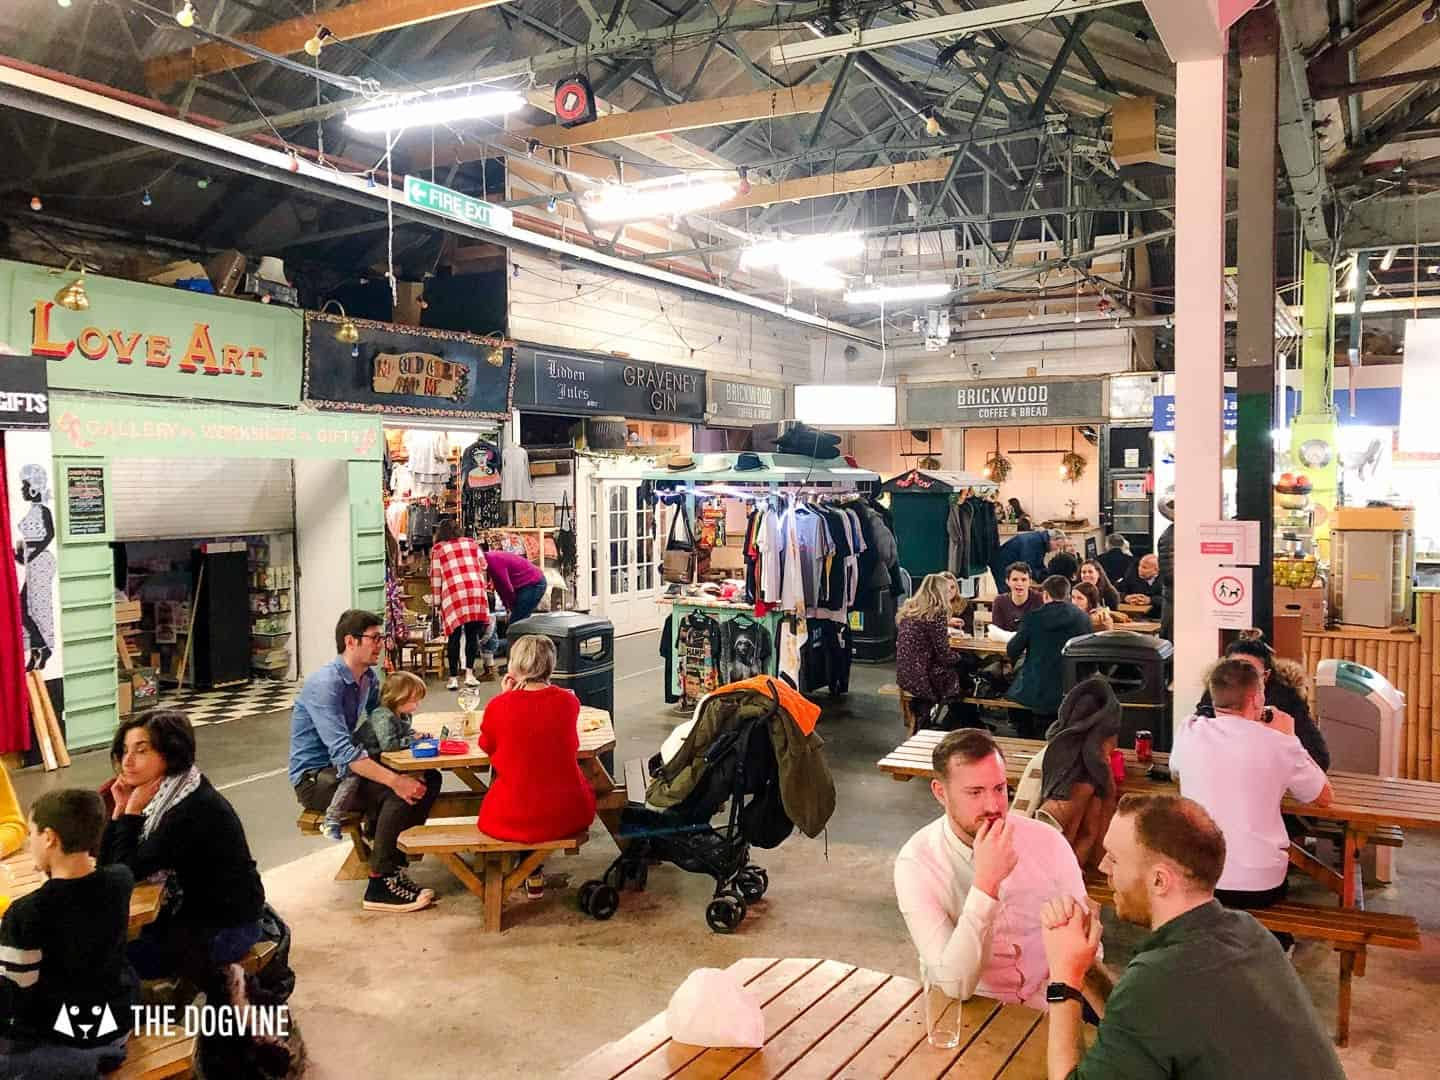 Best Dog-friendly Street Food Markets and Halls in London - Tooting Market